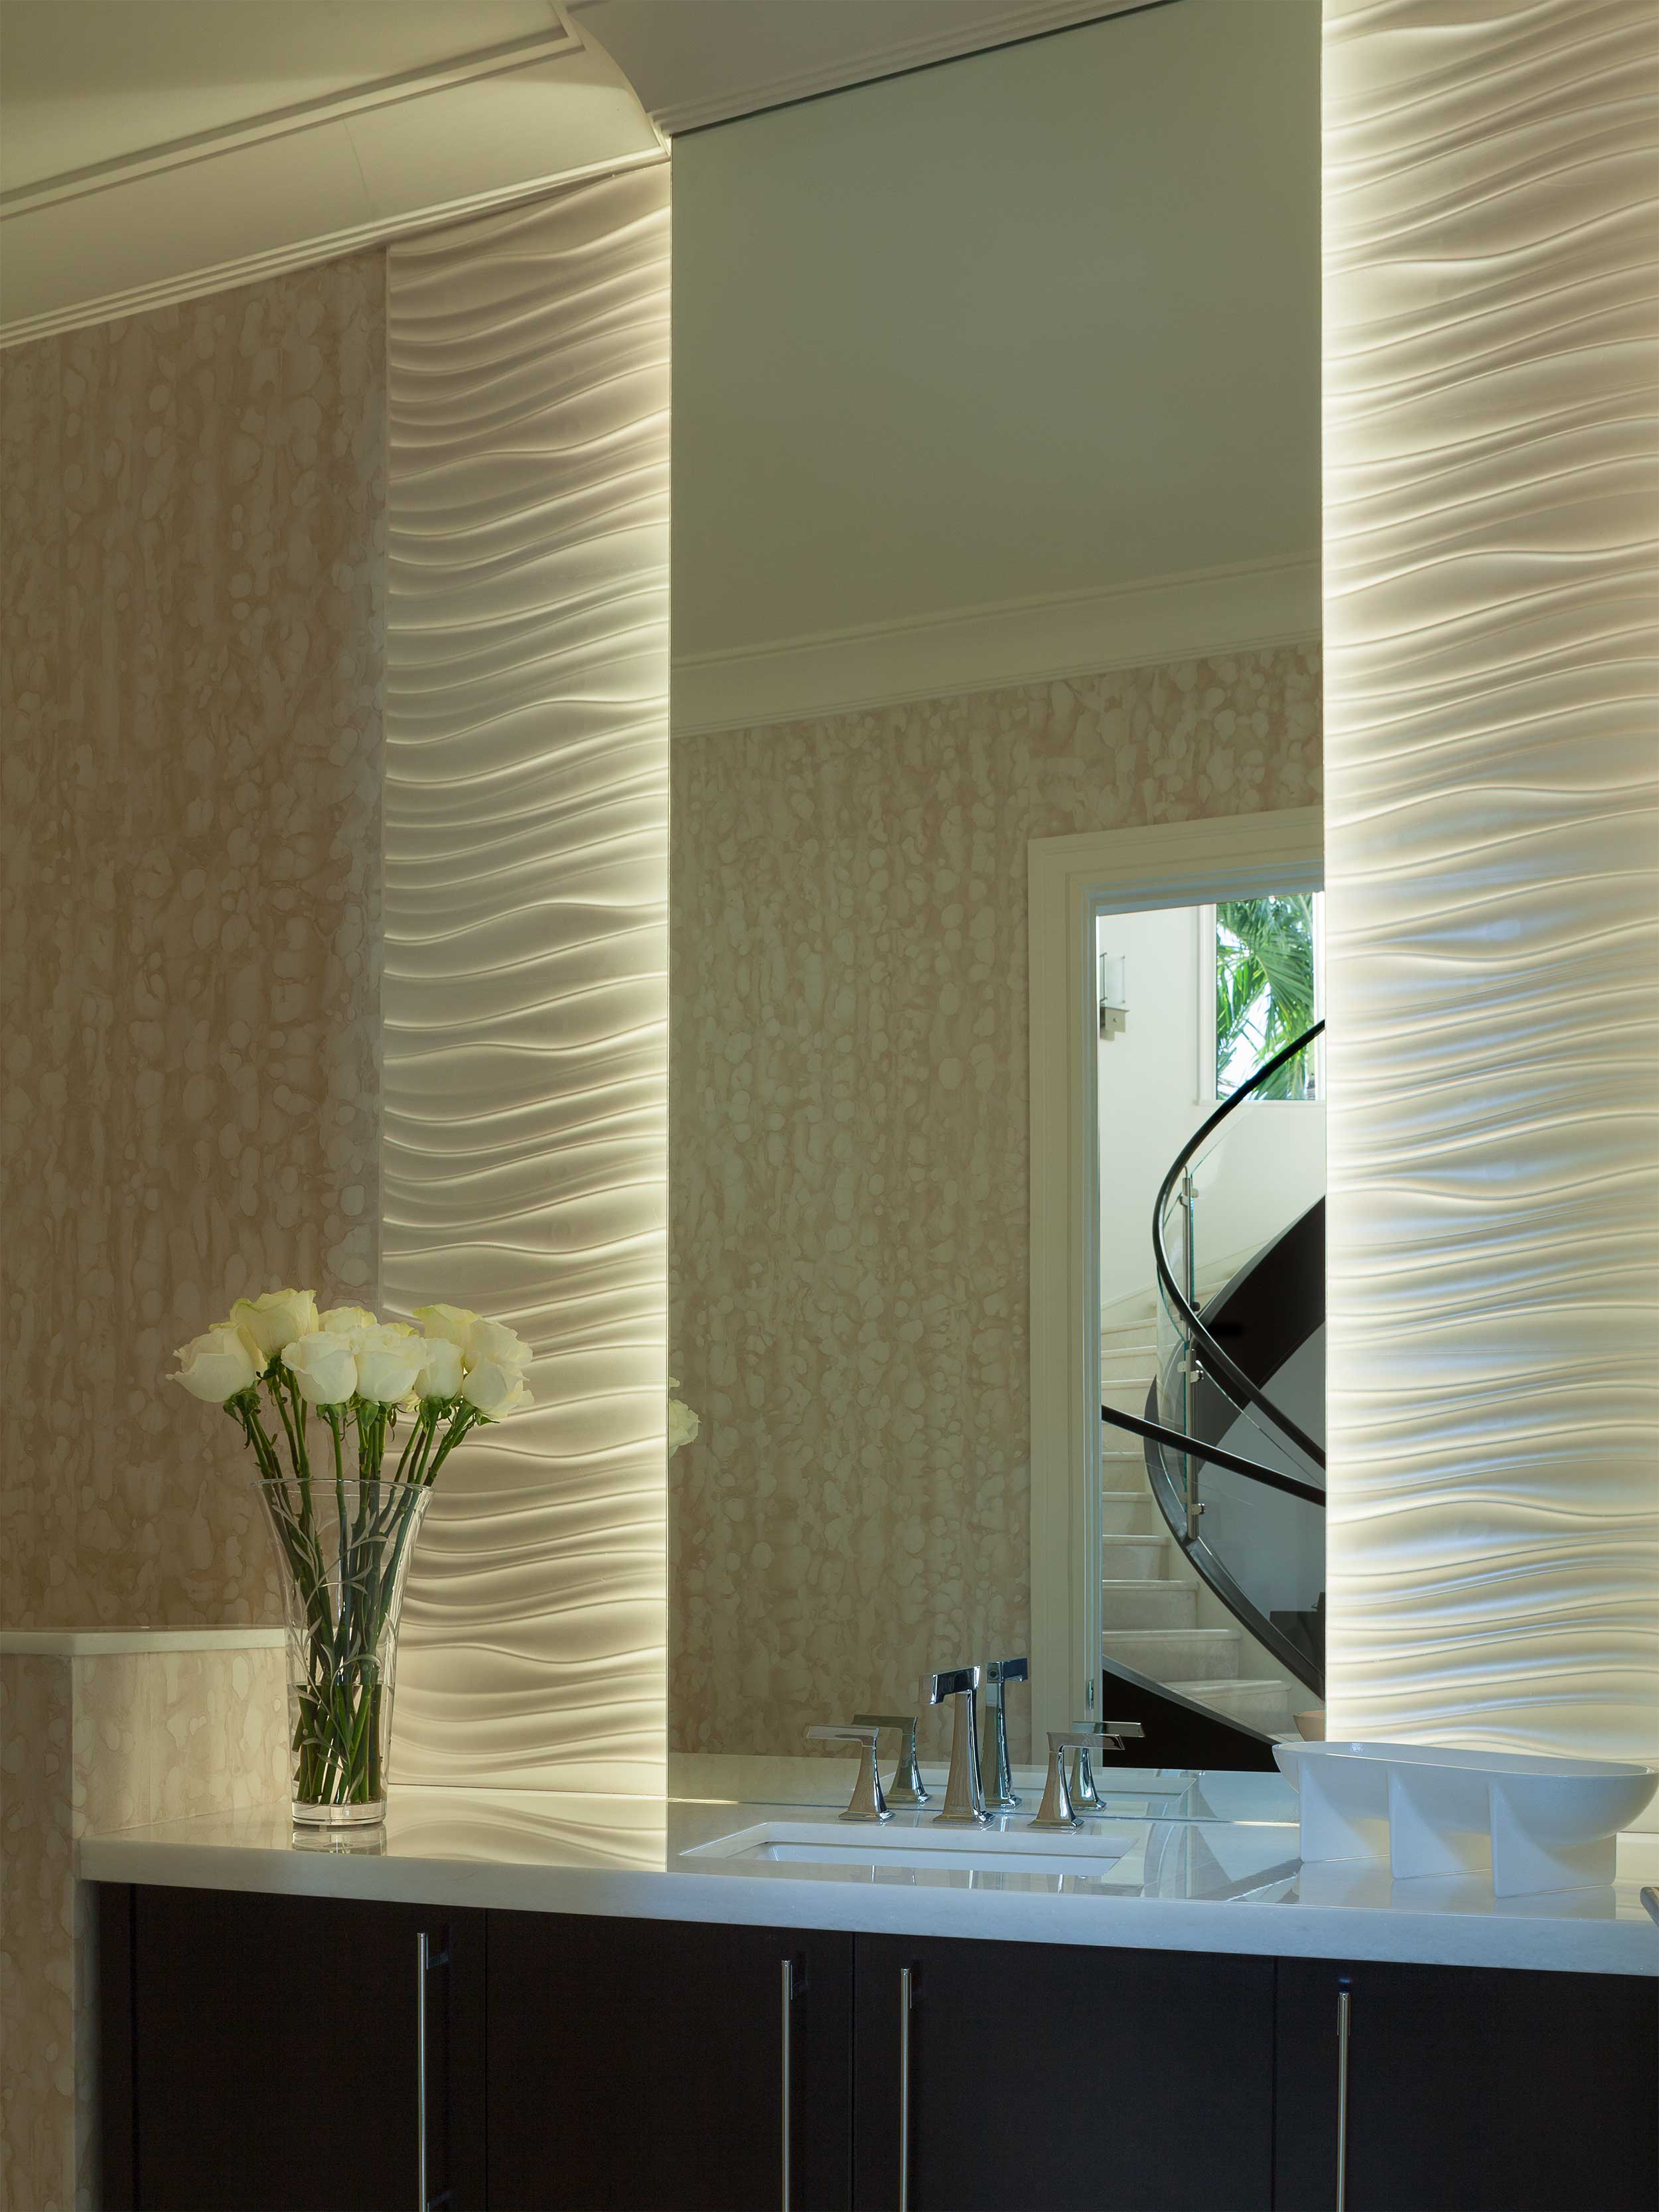 Bathroom with textured columns in Residential Interior Design Project in Jupiter, FL